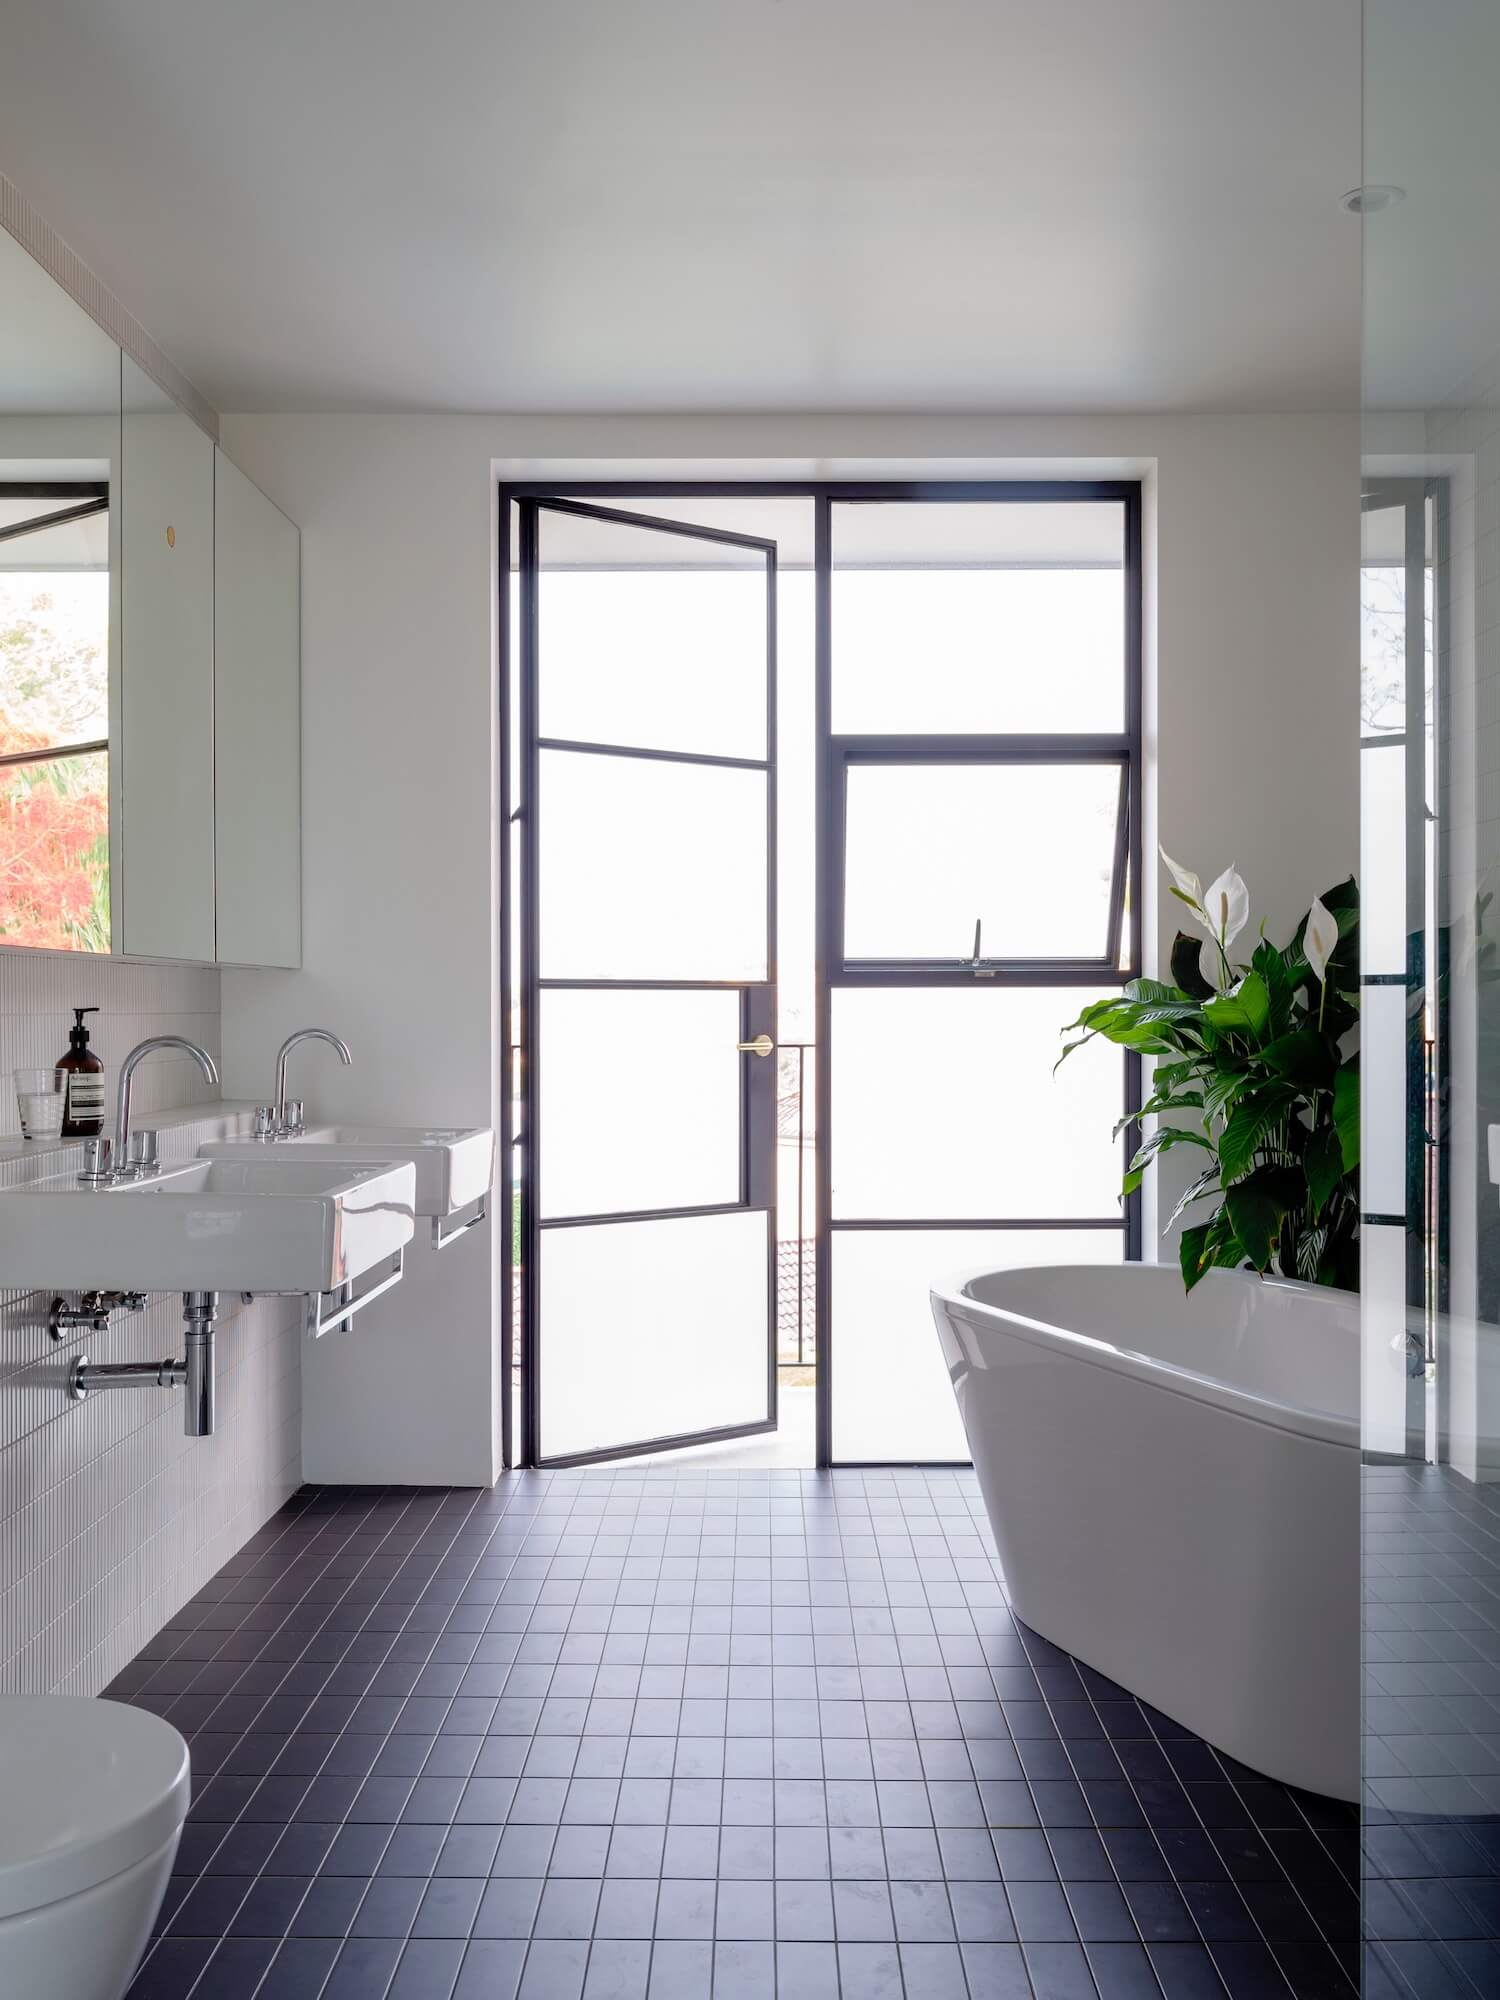 est living ana carin design edgecliff road bathroom